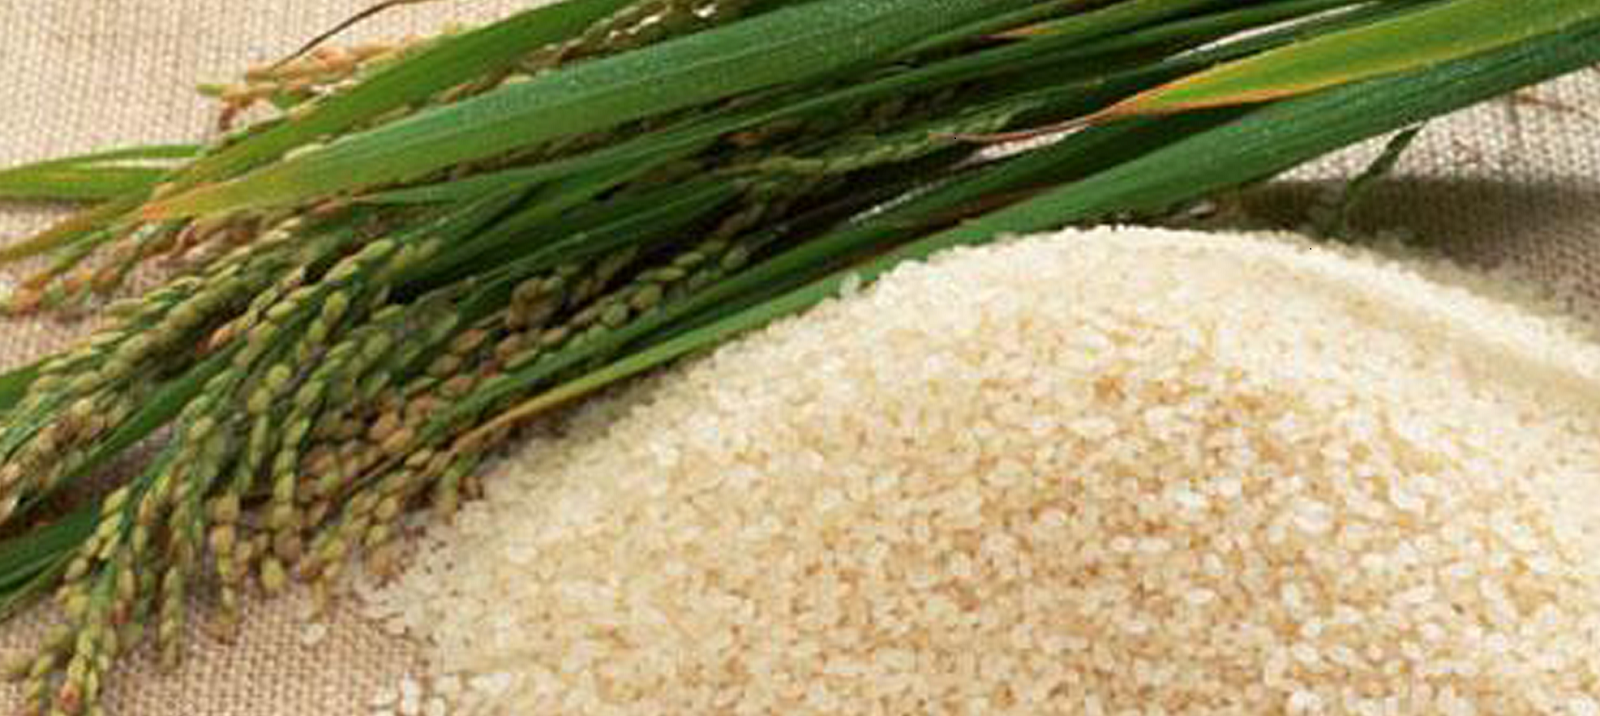 Magic rice or Komal Saul from India's state of Assam which needs no cooking